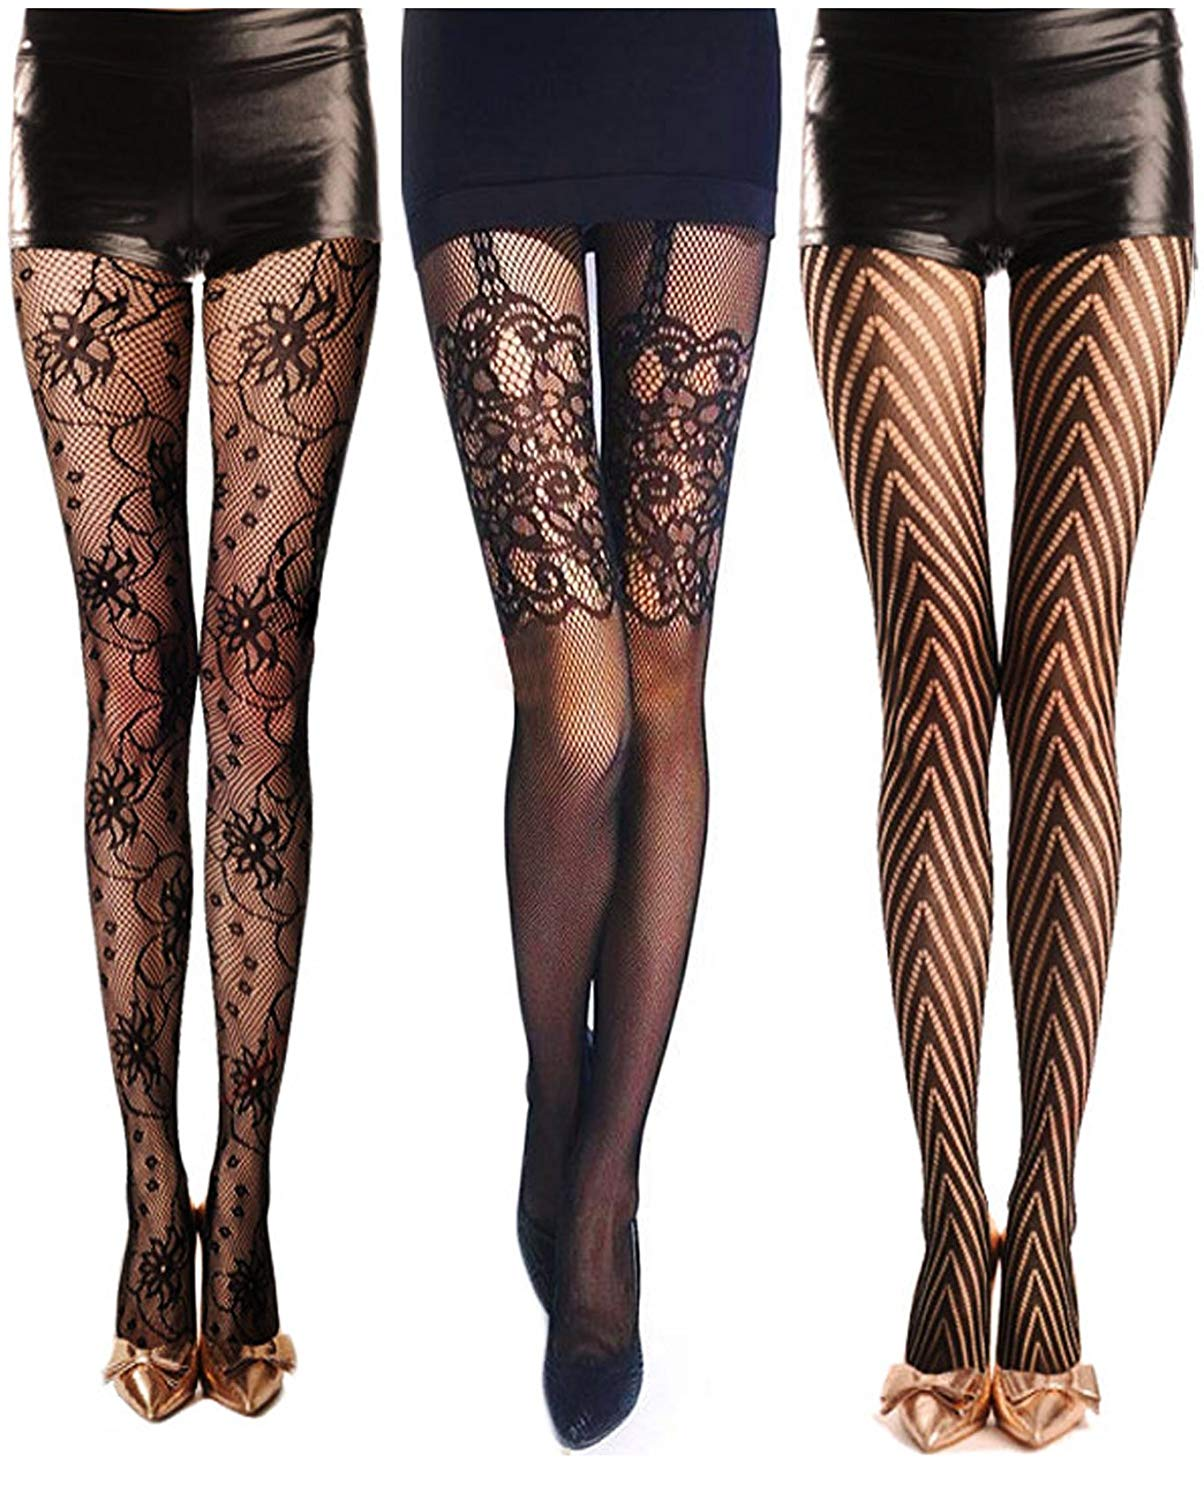 36db3b525 Get Quotations · Dopeme Womens Sexy Fishnet Tights Hosiery Extended Sizes  (Pack of 3)